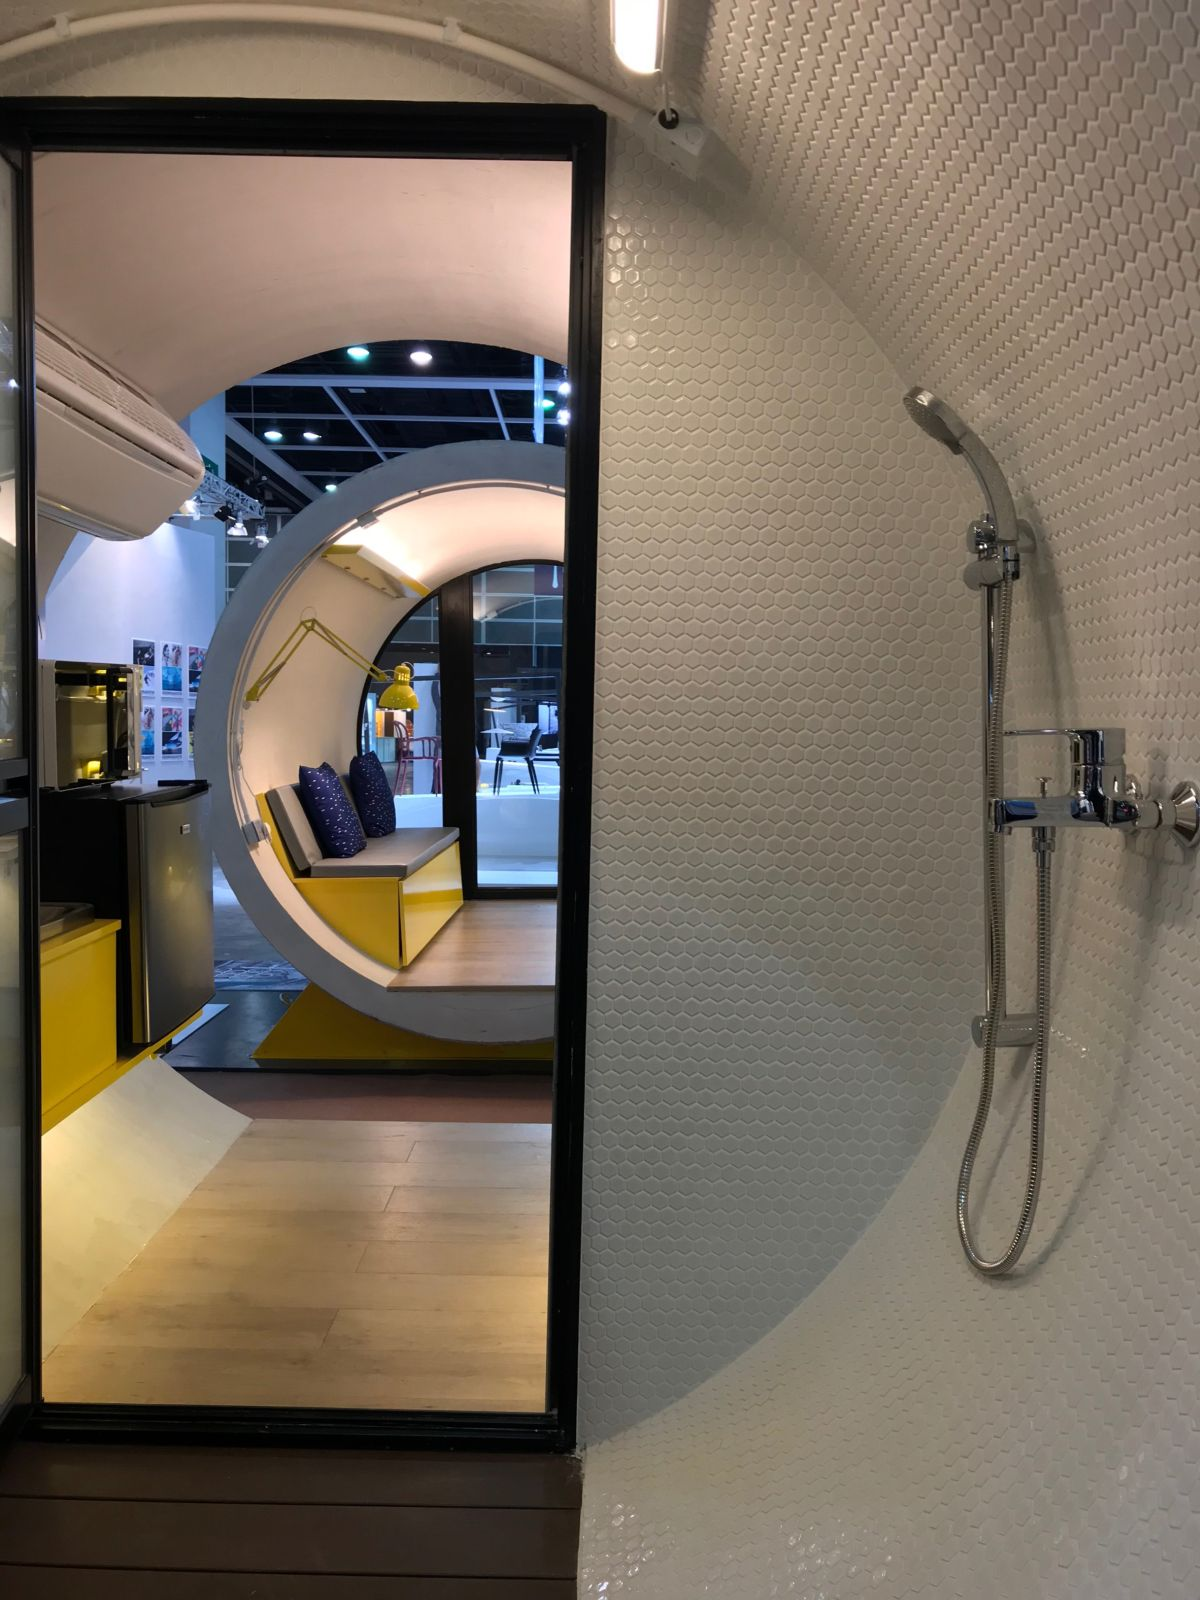 The interior is small and has curved walls which in the bathroom are hovered in hexagonal tiles